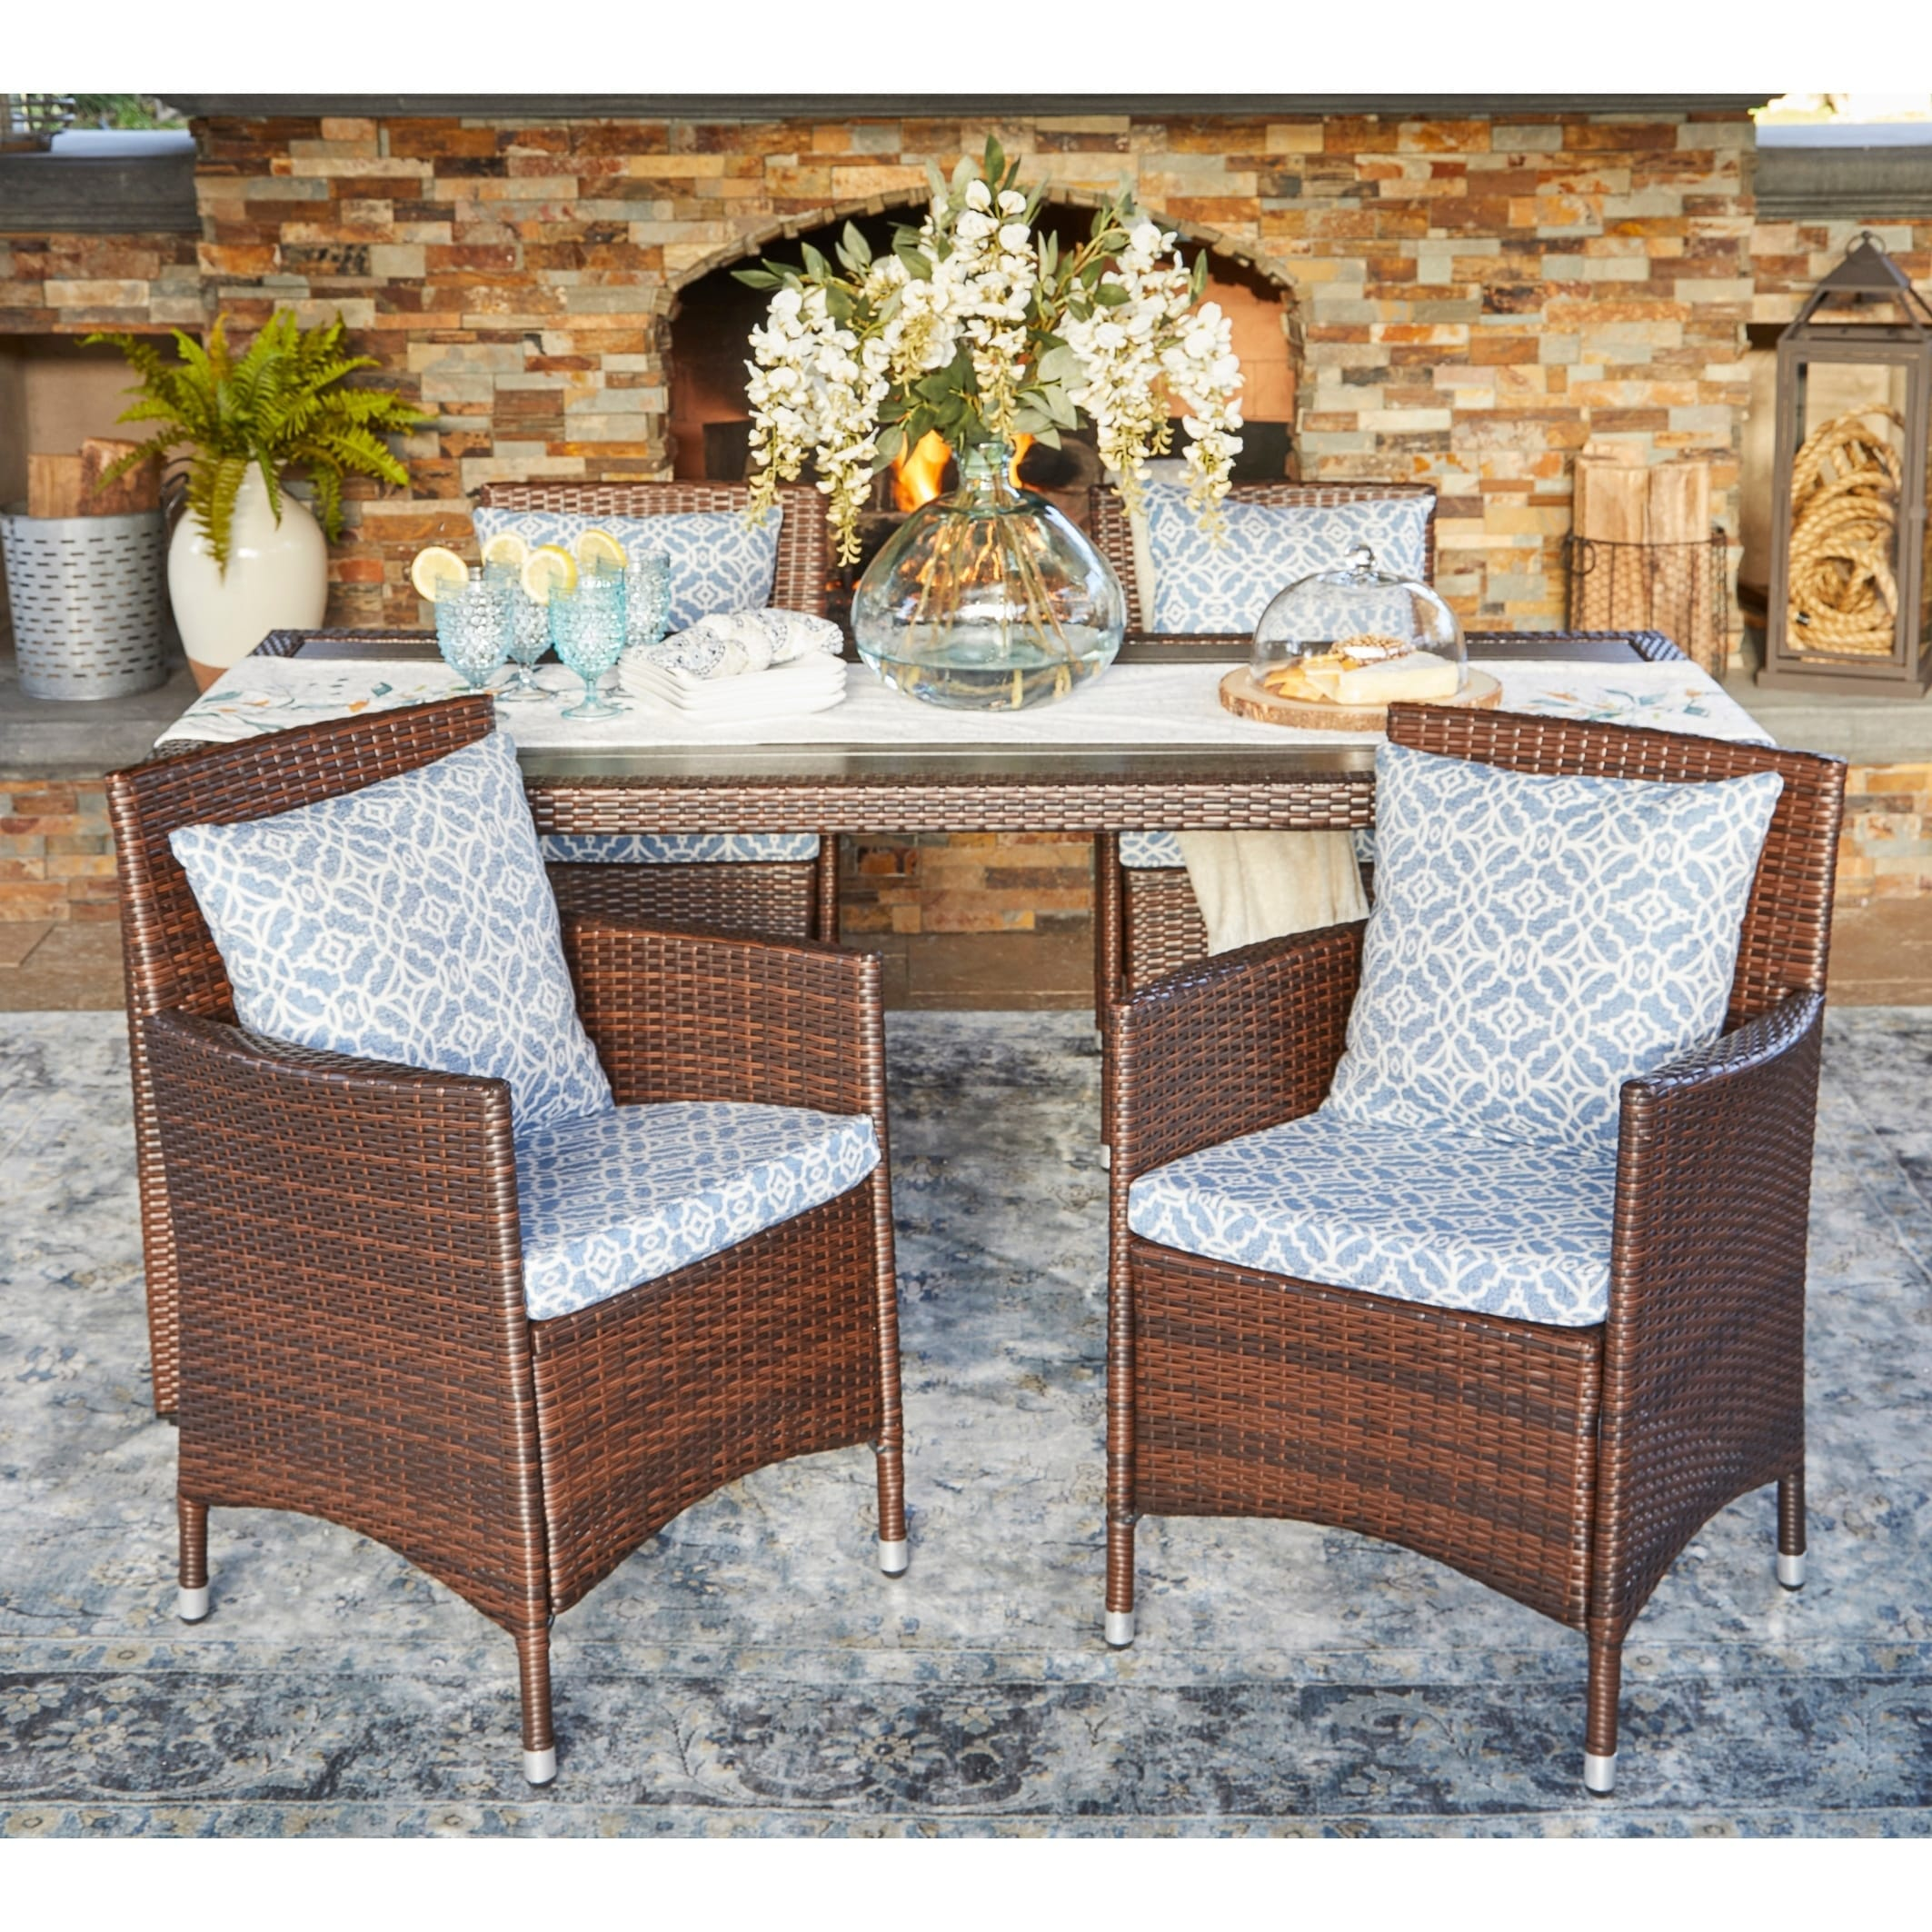 Handy Living Aldrich Indoor Outdoor Brown Resin Rattan Dining Chair Set With Blue Geometric Cushions